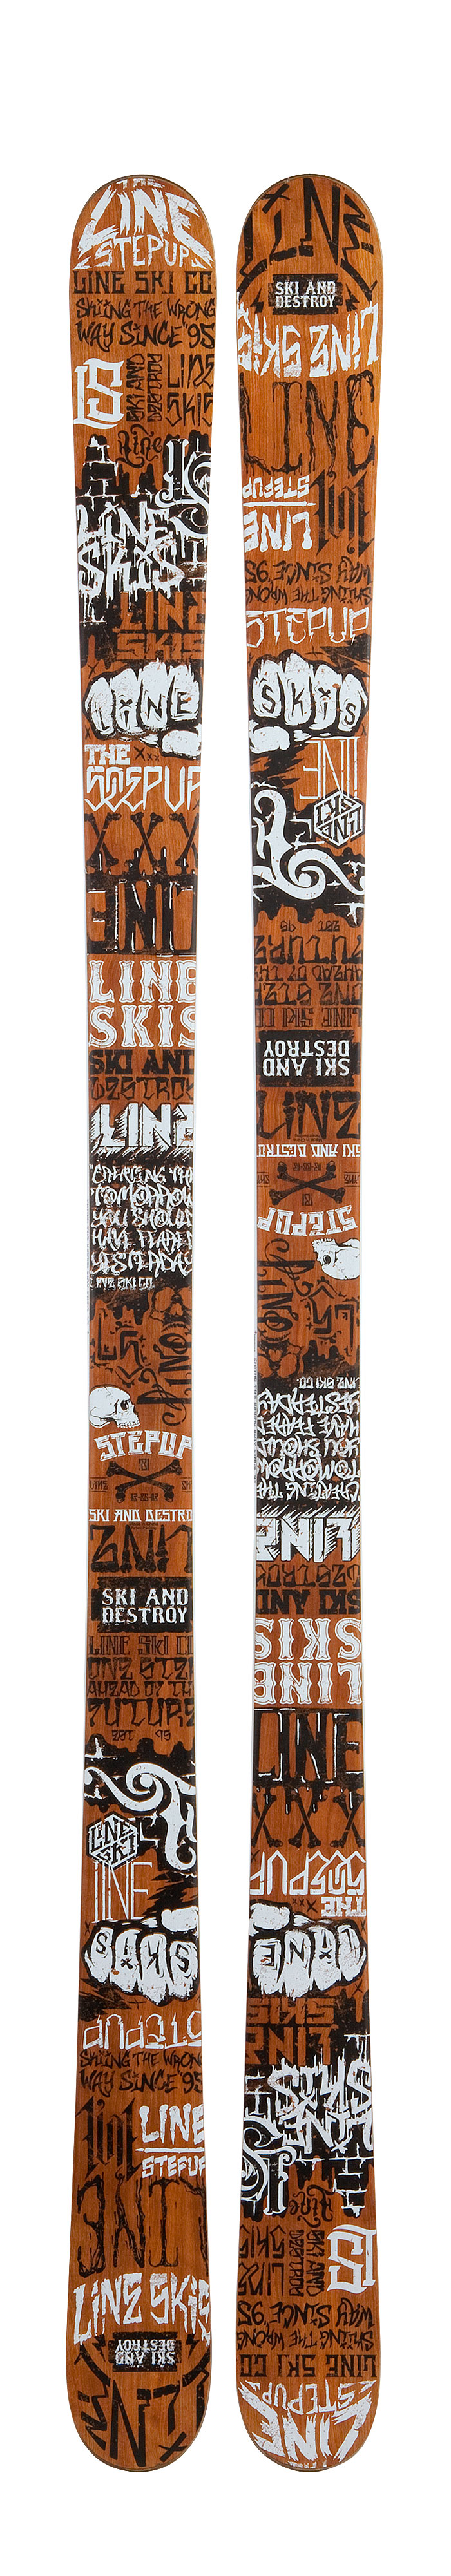 Ski Line Stepup Skis - $251.95